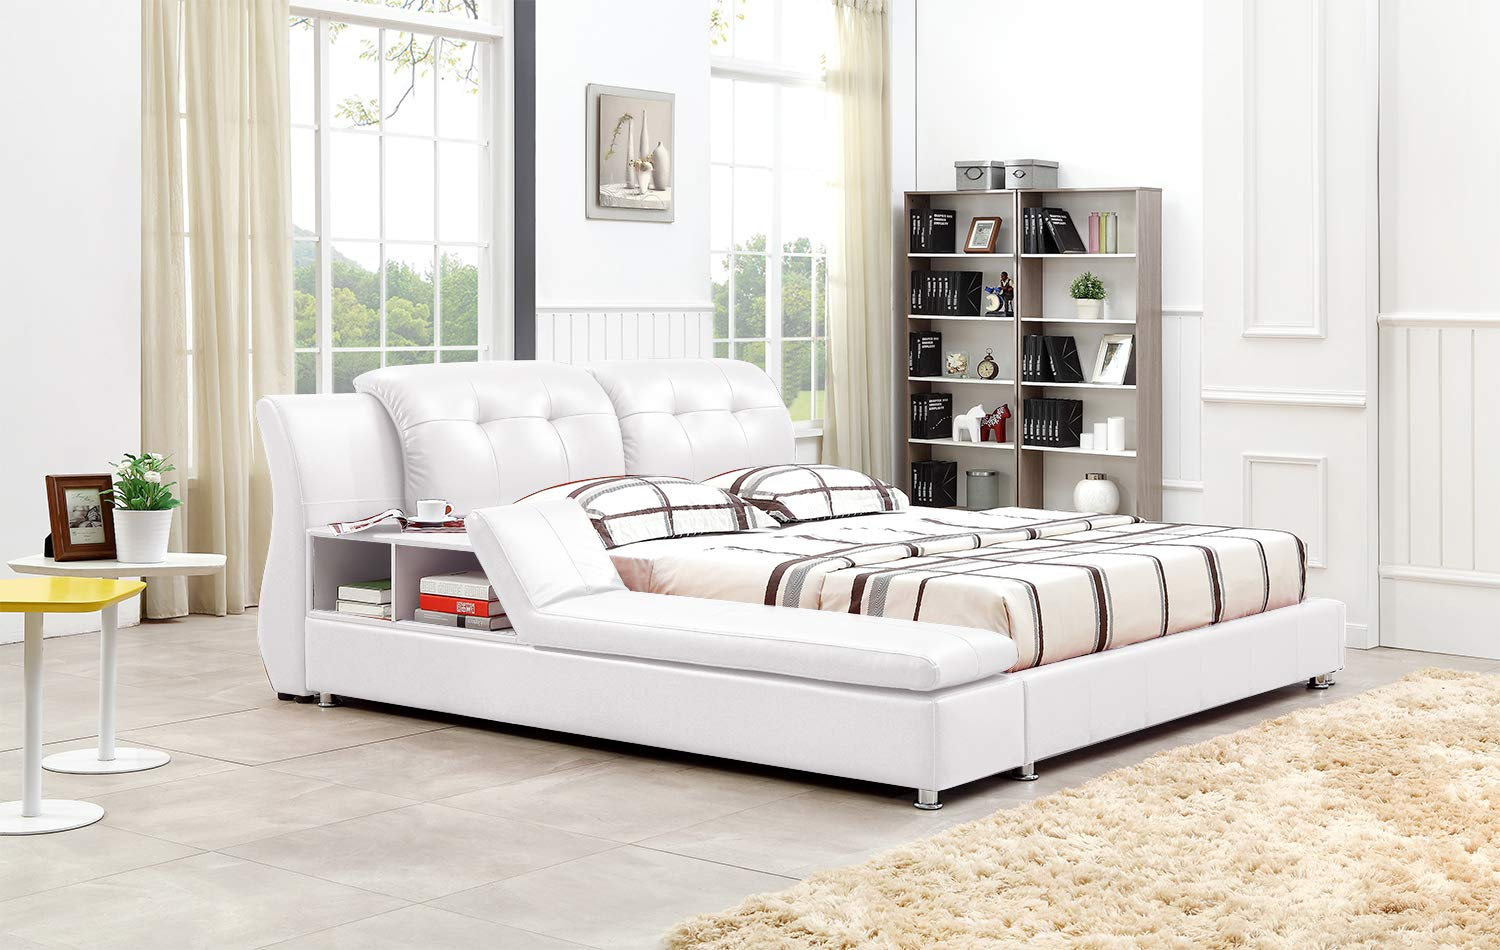 Greatime B2003 Platform Bed (Queen, White) by GREATIME